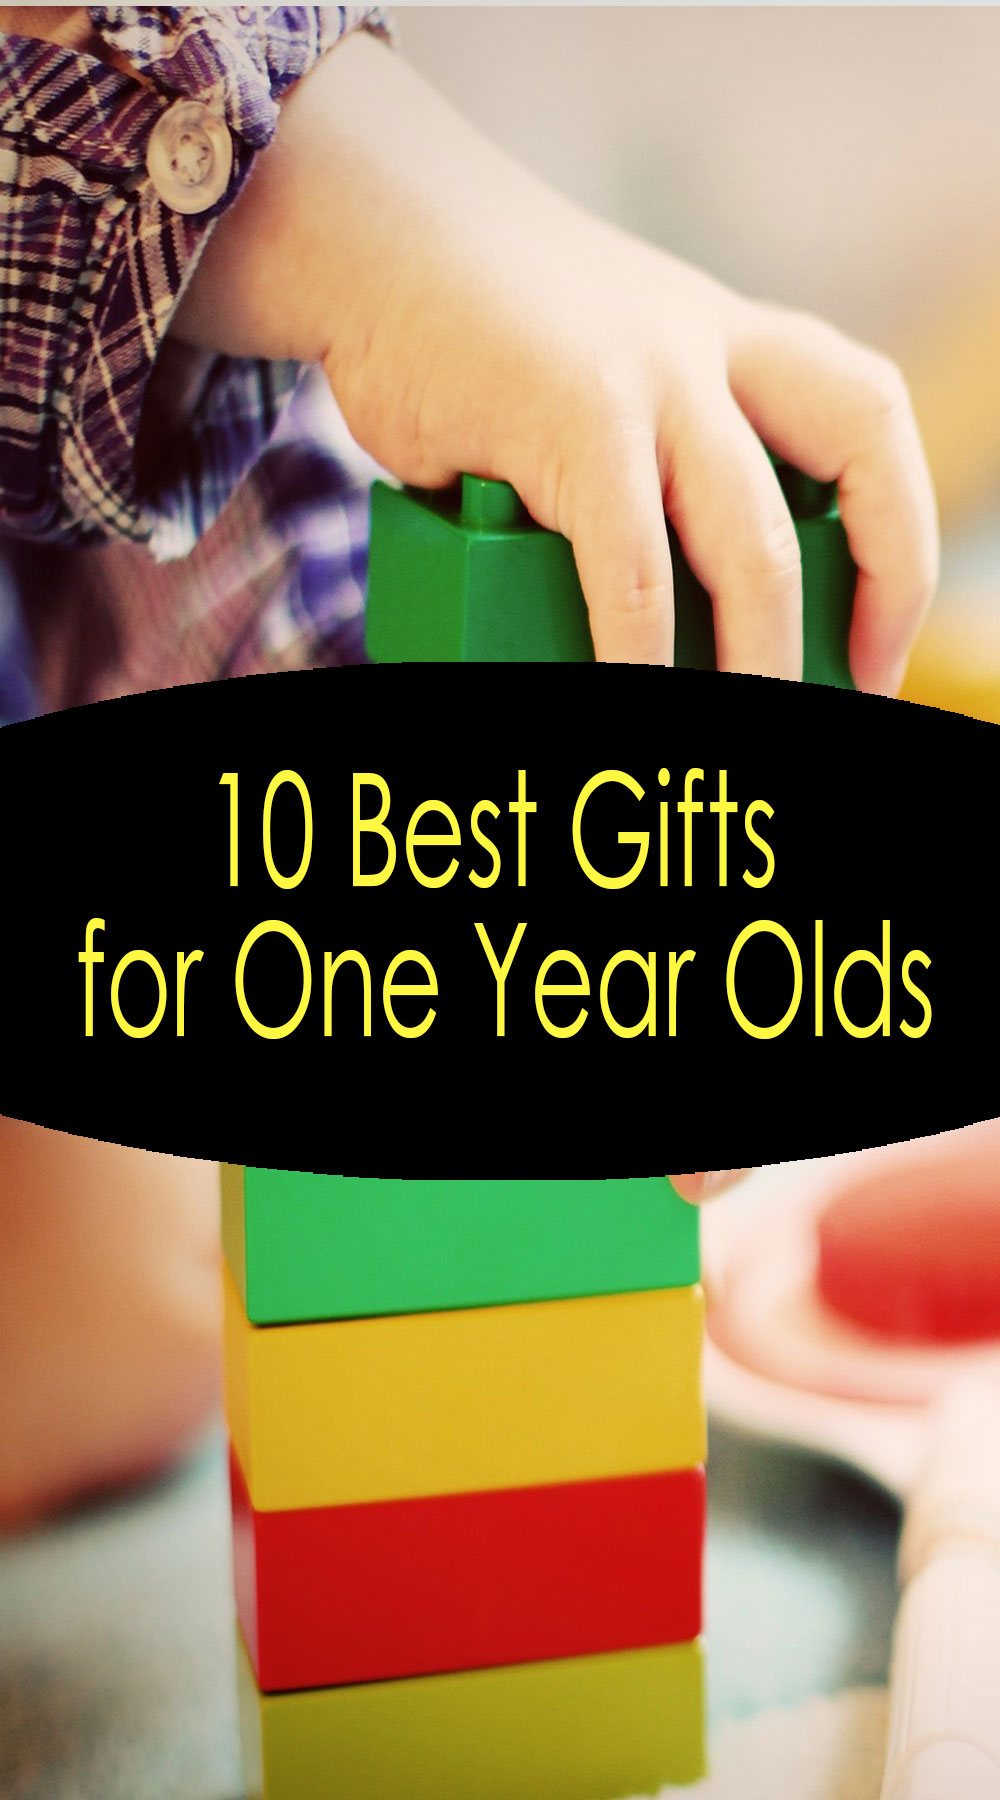 10 Best Gifts for One Year Olds